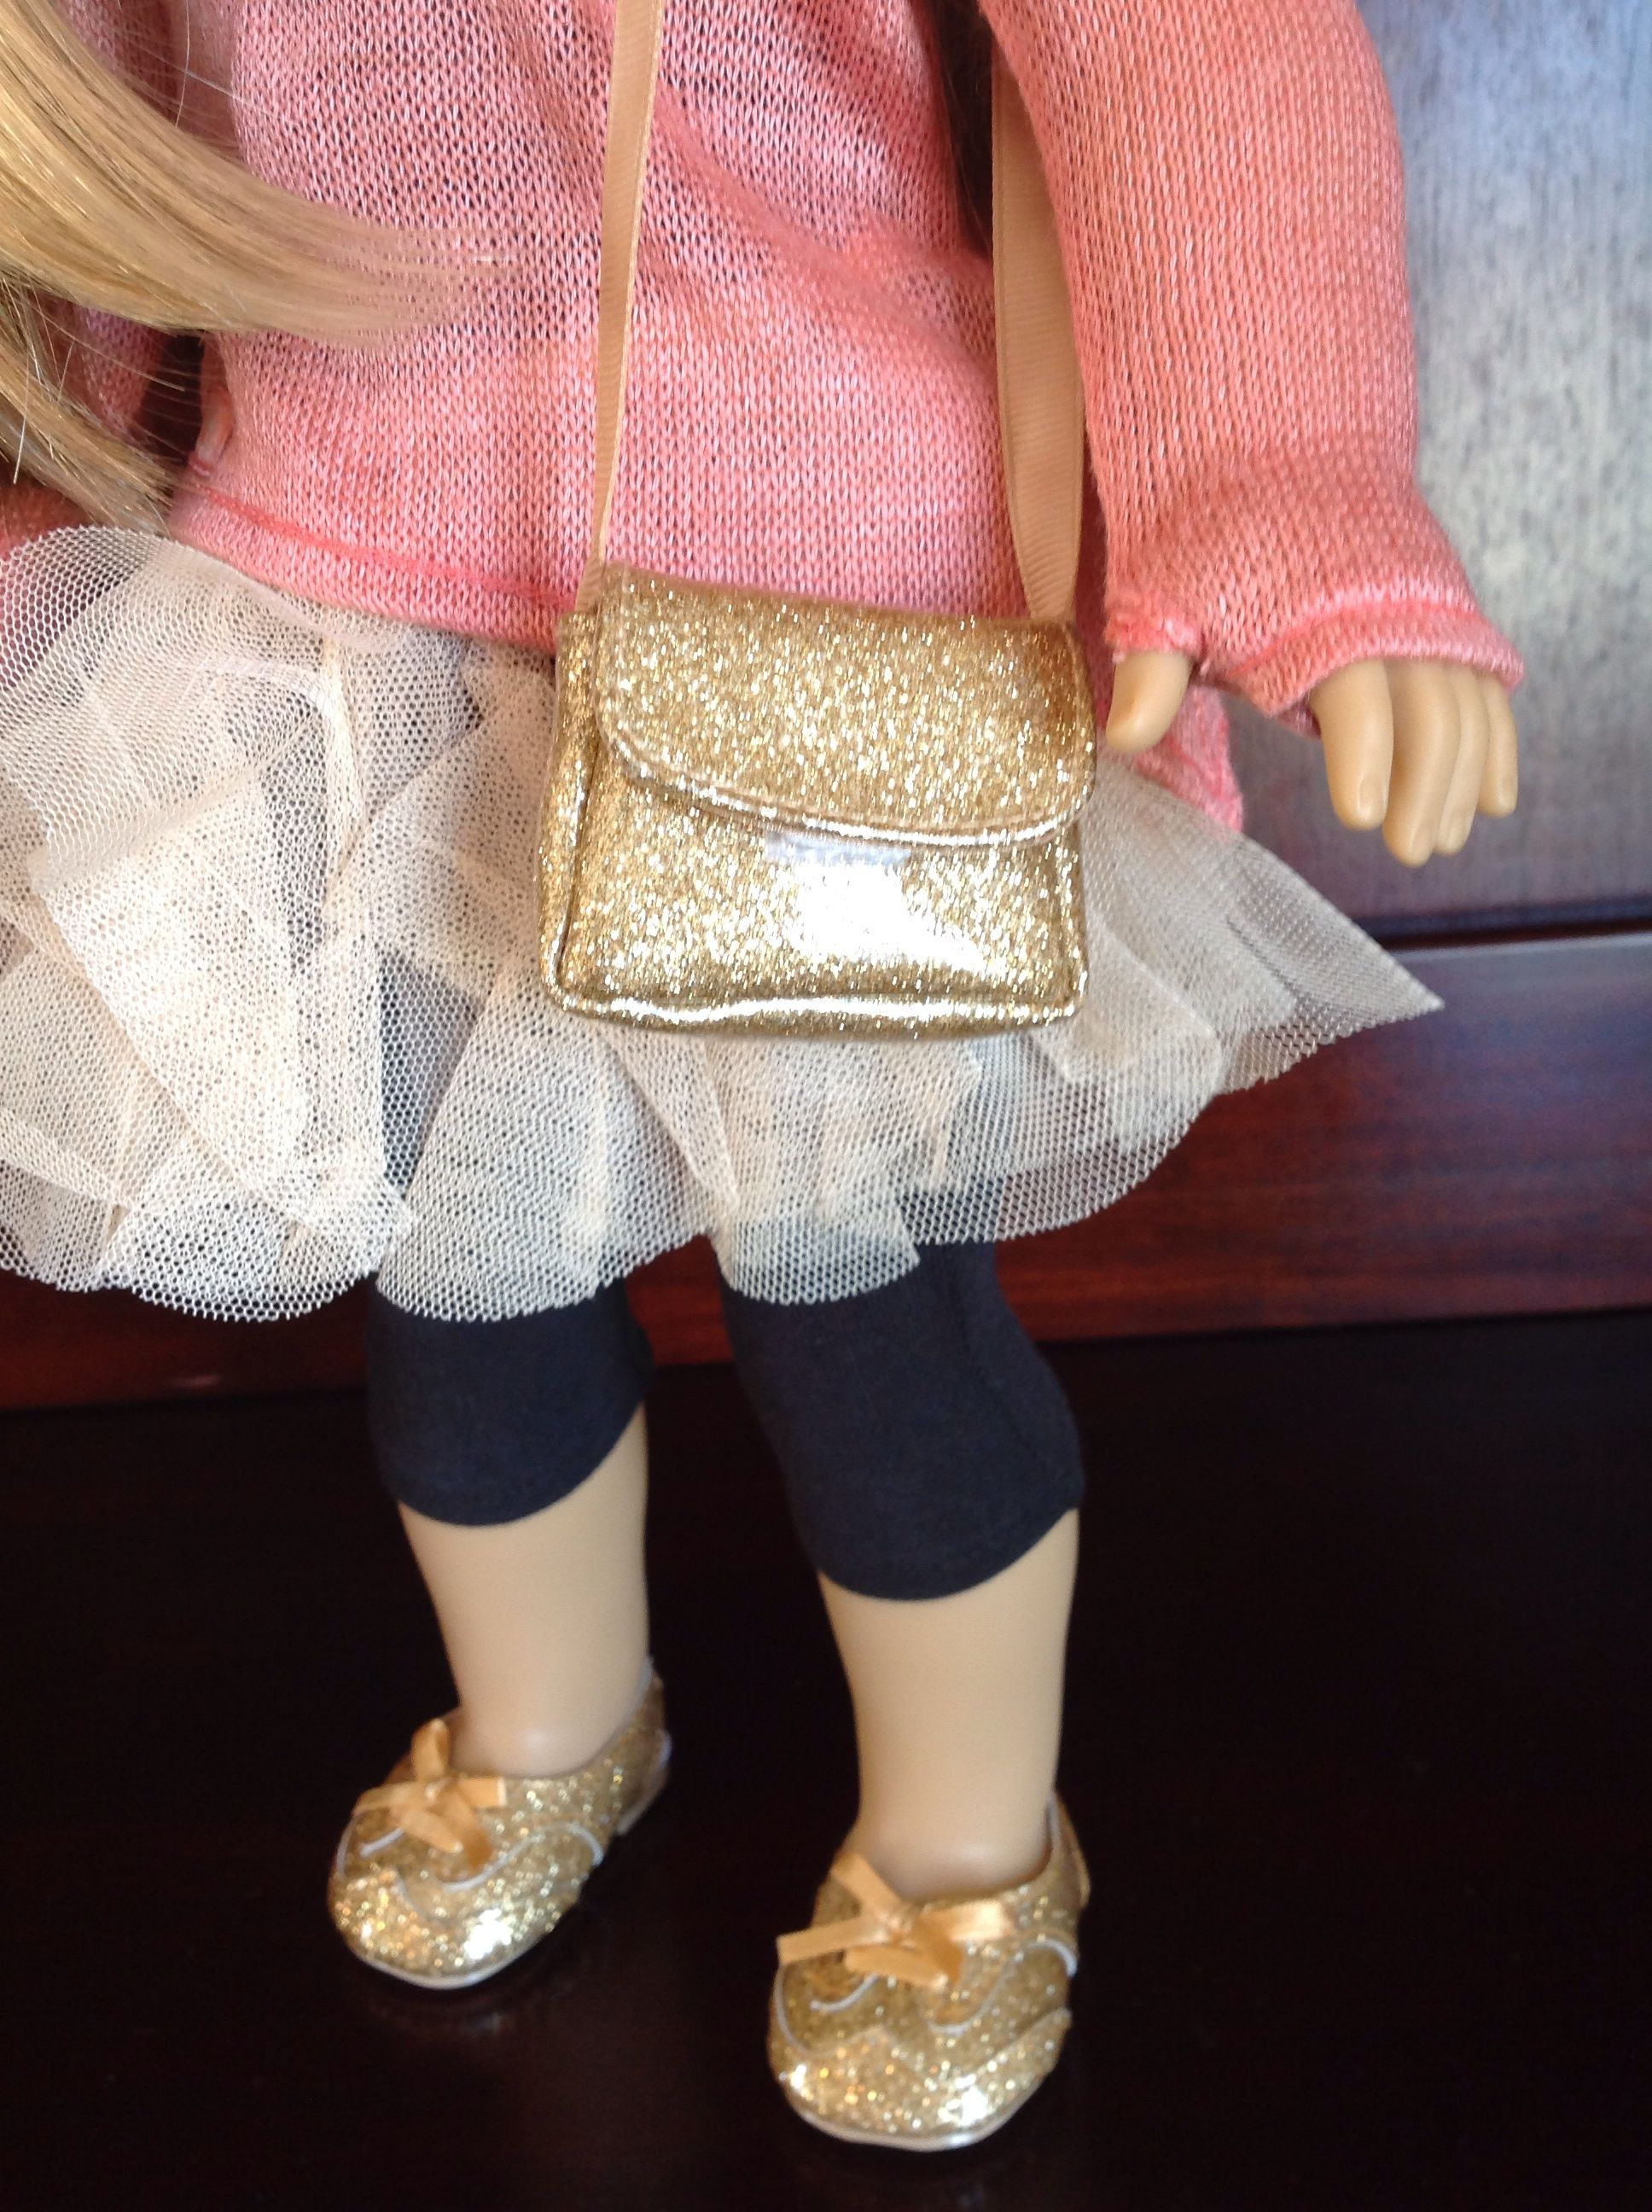 American Girl Isabelle wearing gold purse and meet shoes